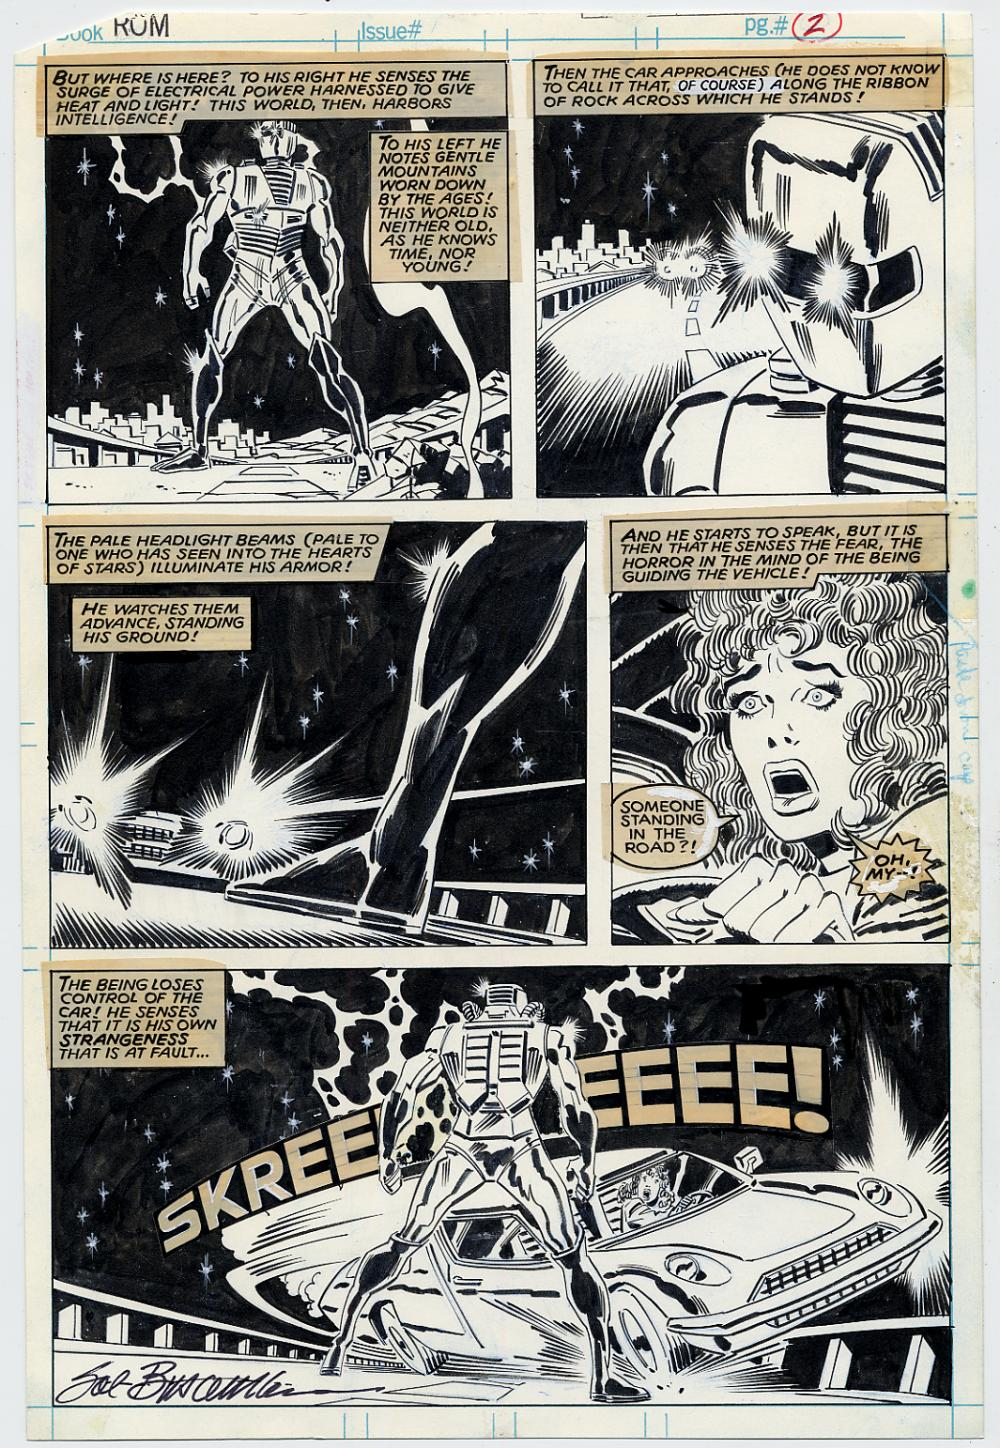 on sale 0d169 d6a93 ROM #1 pg 2 Sal Buscema on Ebay May 4th 7pm EST - Original ...